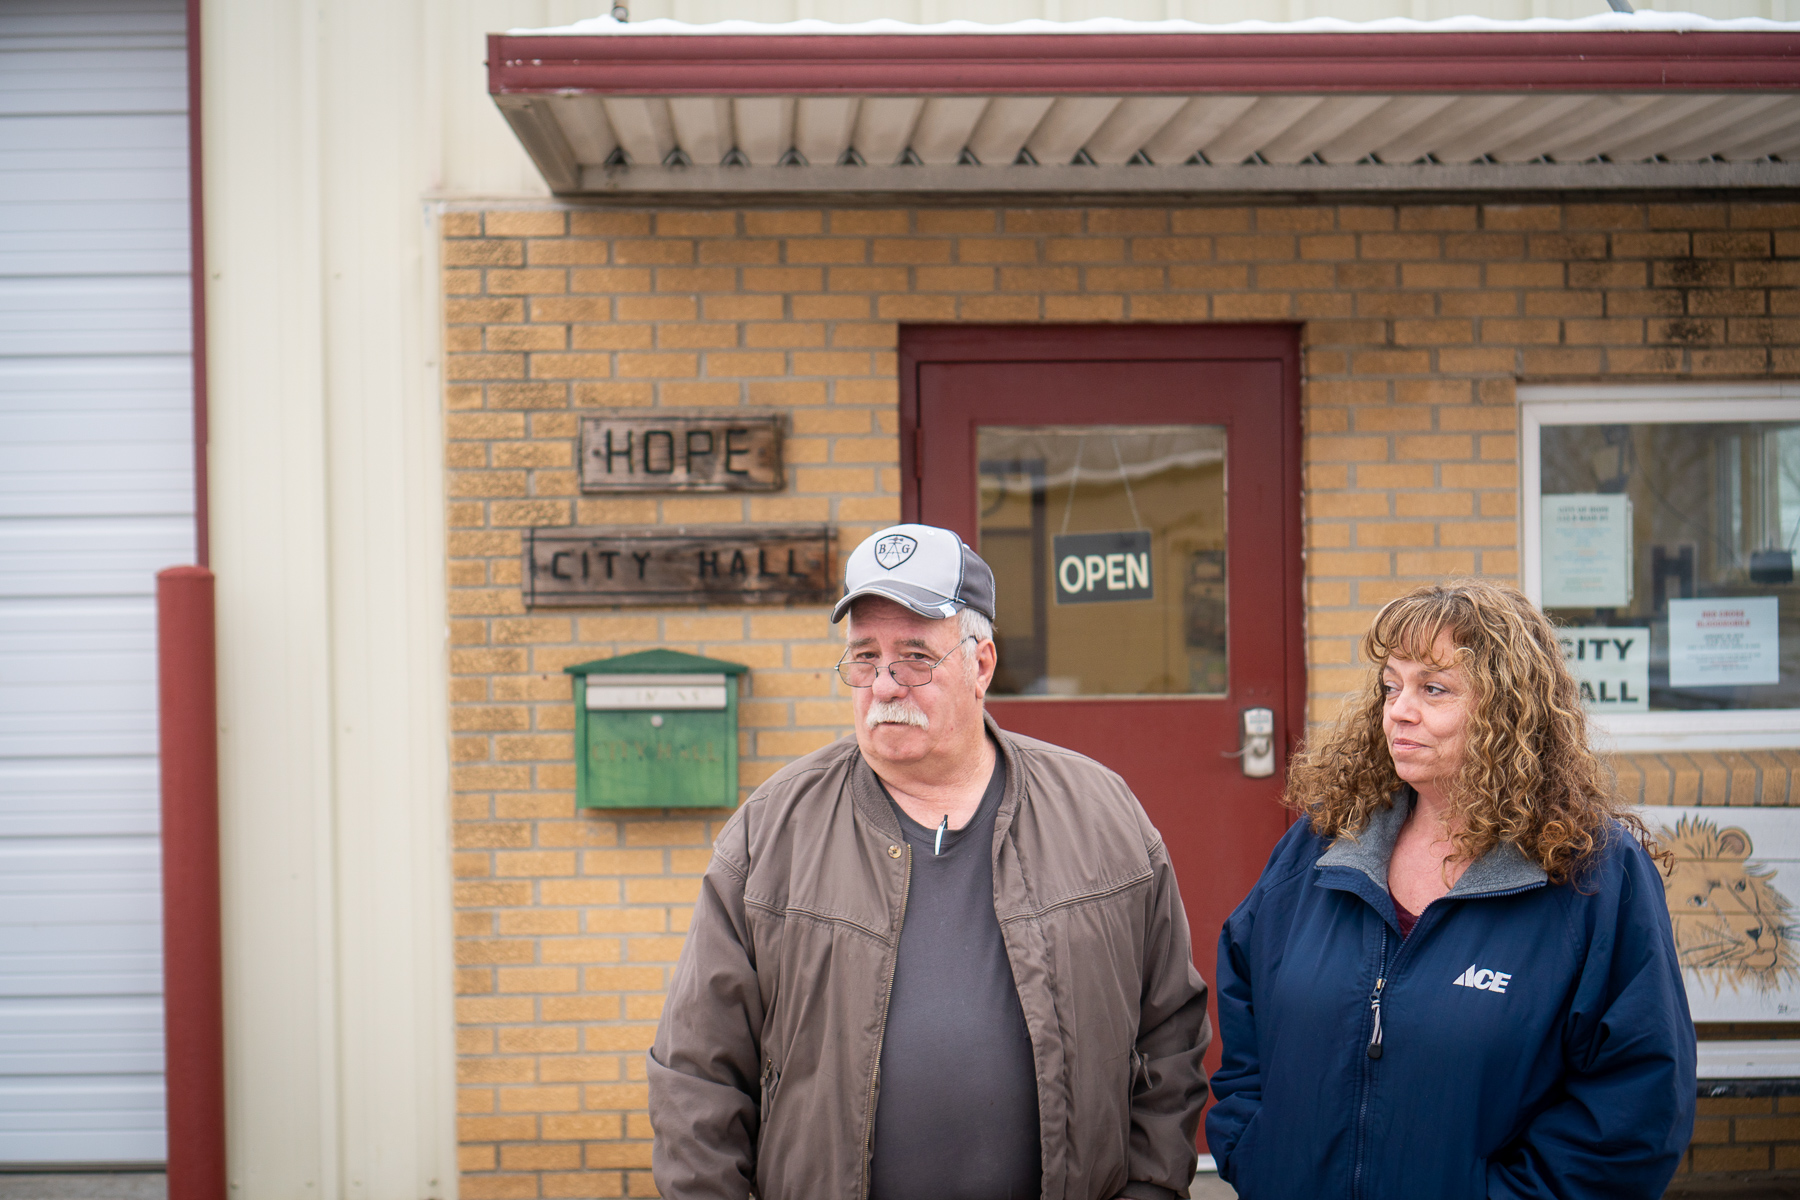 Larry Ryff, Hope Mayor, and City Clerk Joni Rickard outside of Hope's small city hall on January 15, 2019.